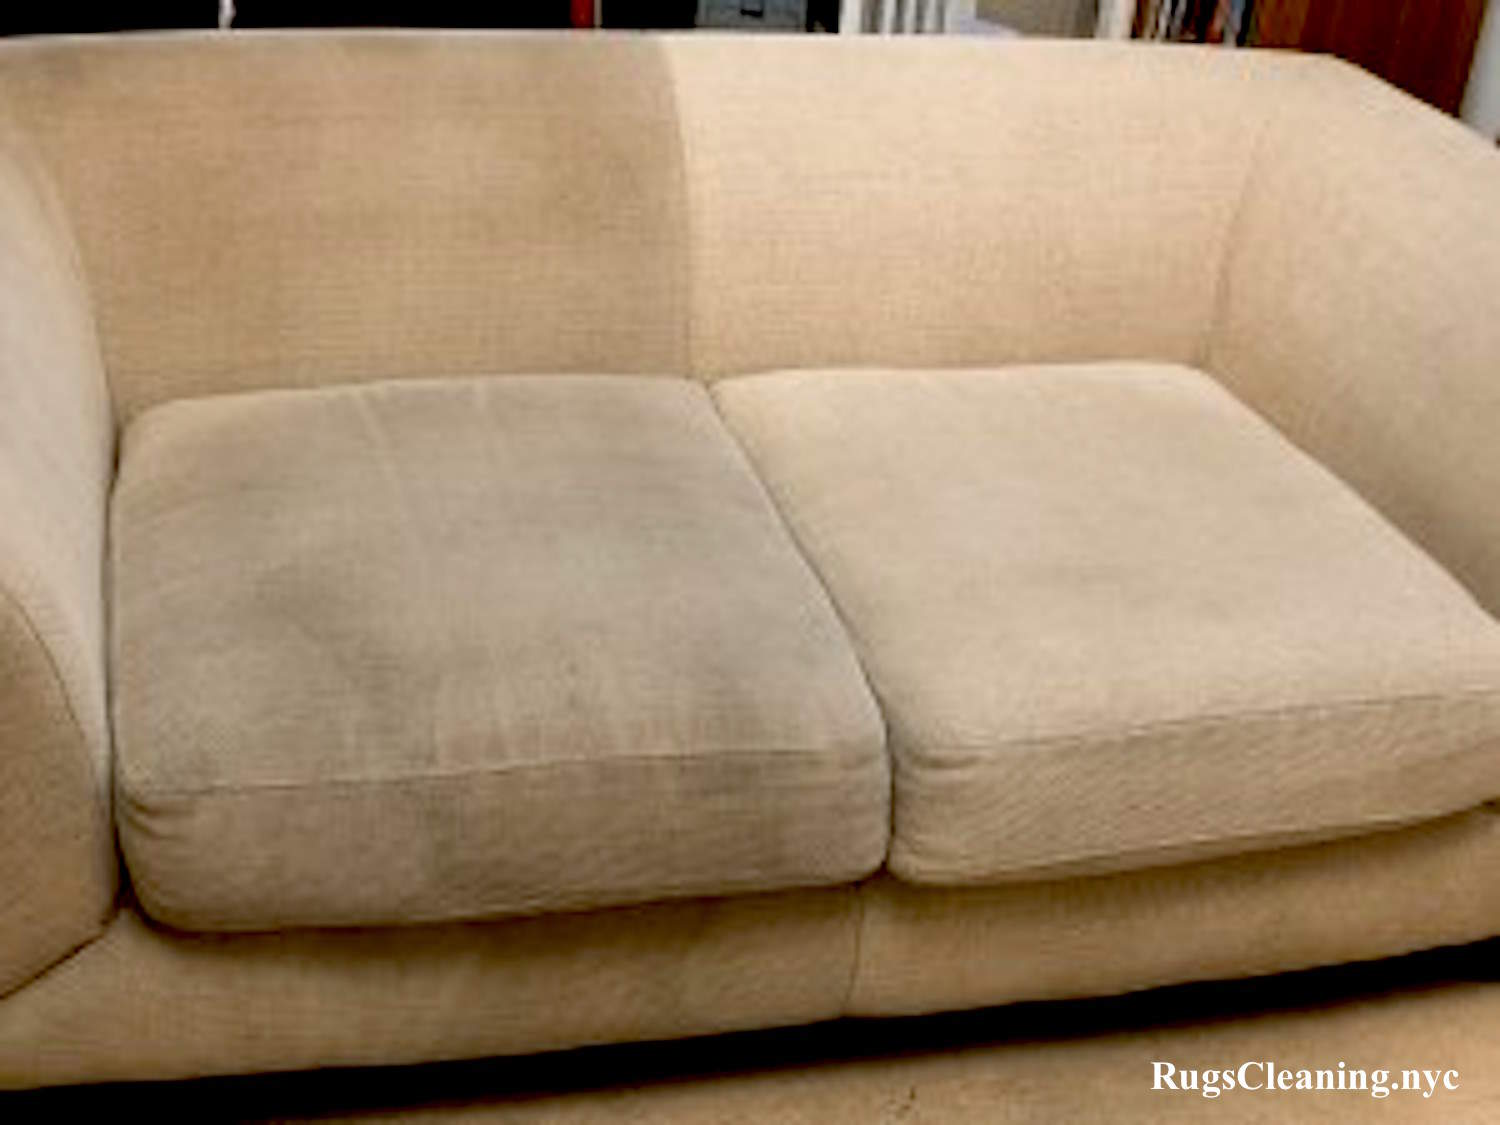 sofa cleaning nyc service 89 3 seat sofa cleaning rh rugscleaning nyc Cheap Red Sofa Cheap Sofa Beds for Sale